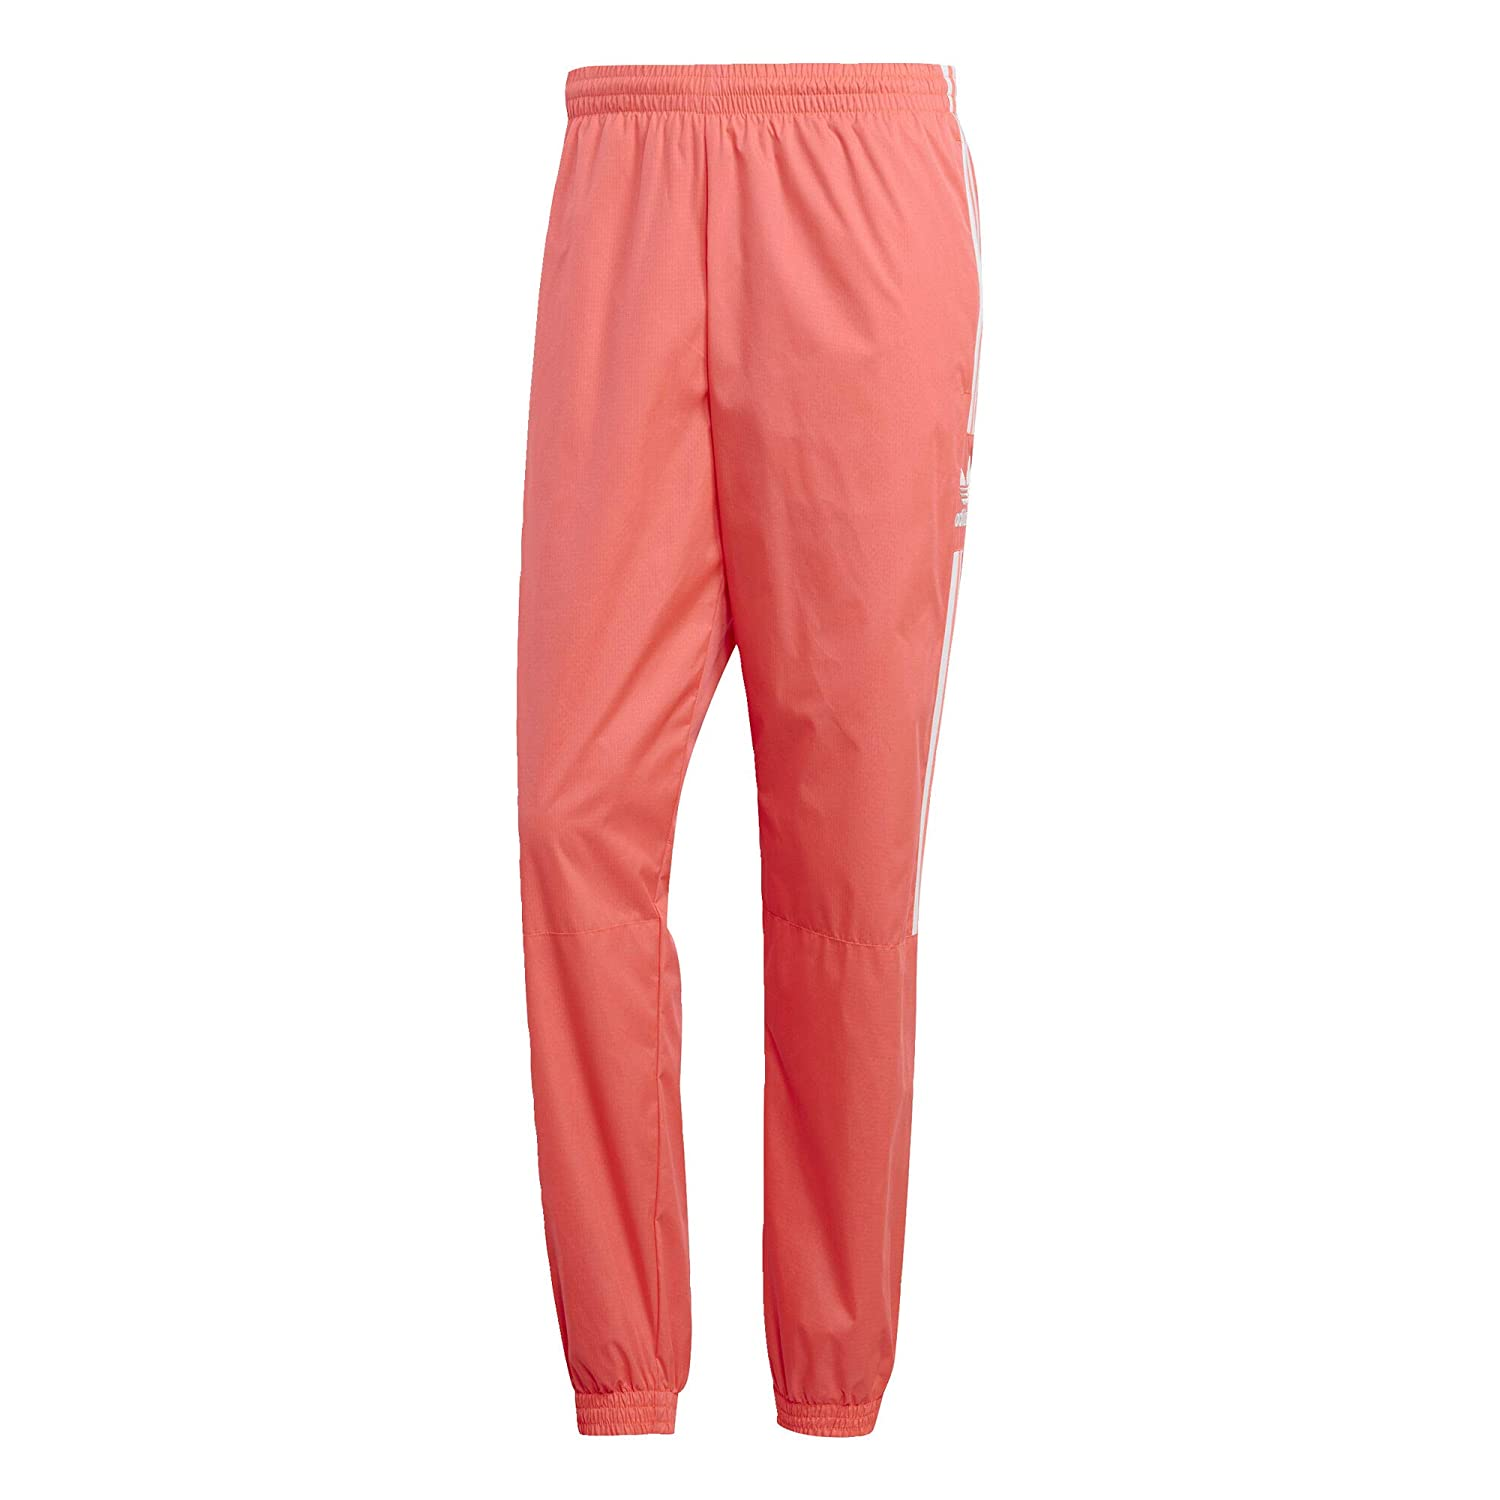 Adicolor Red SST Track Pants in 2019 | Red pants outfit, Red